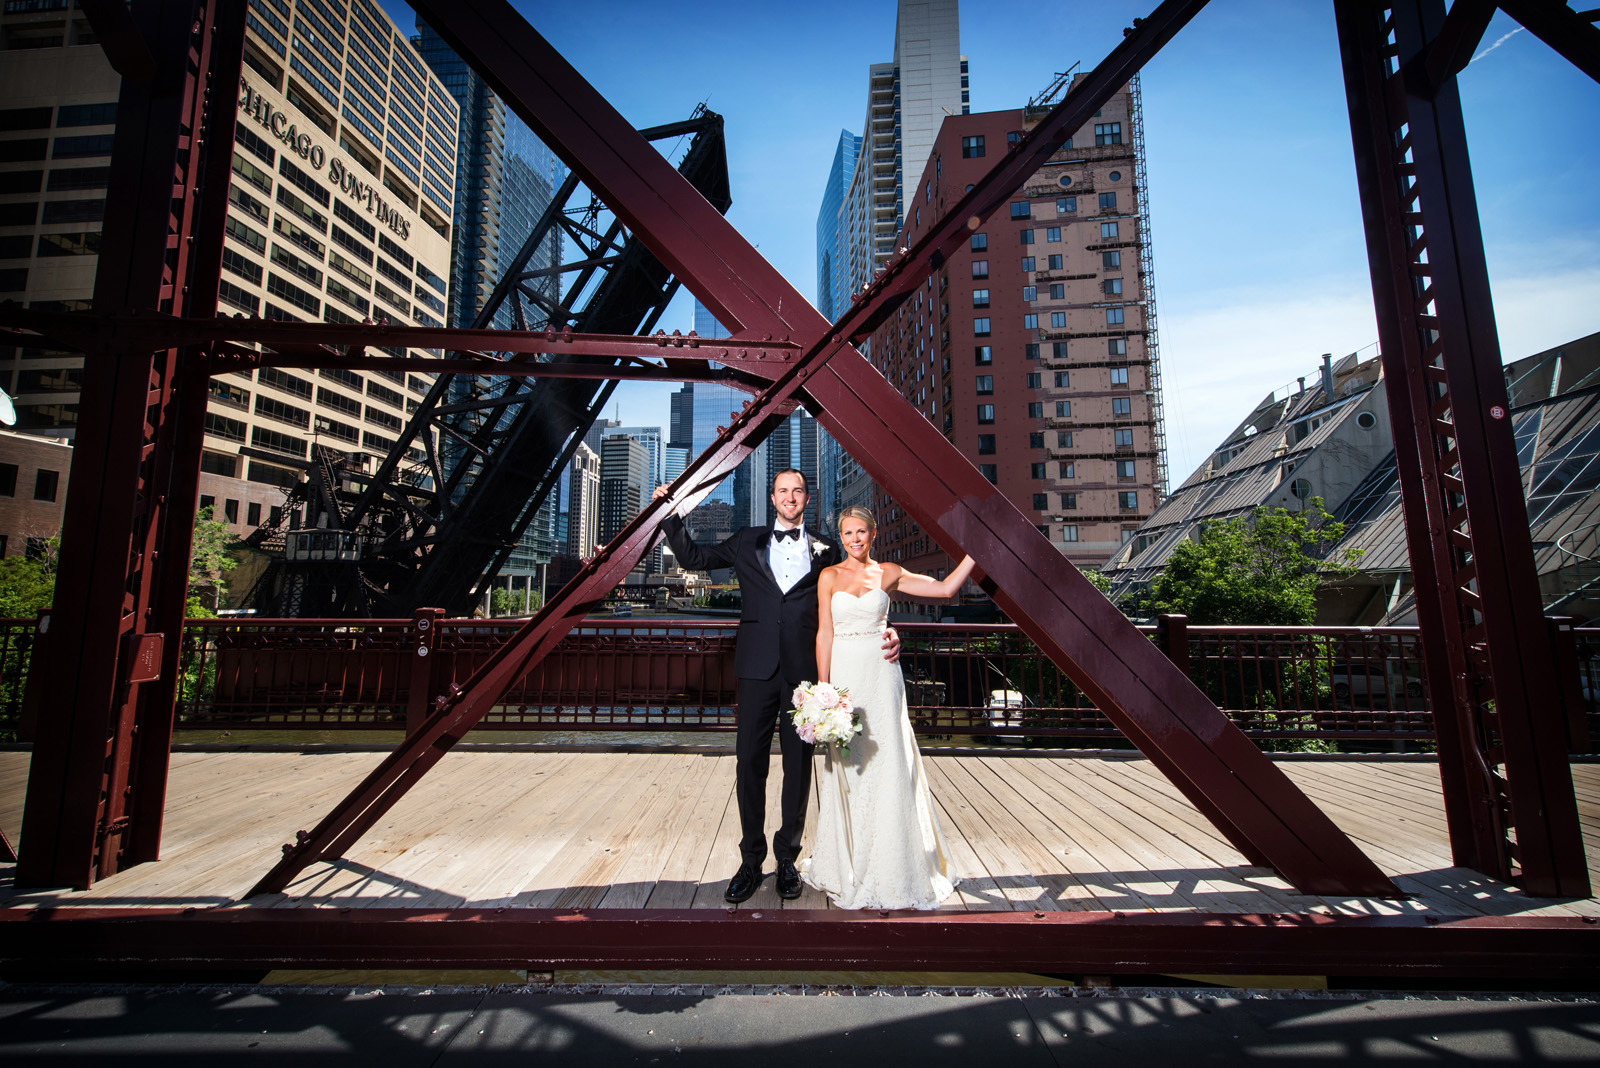 Colorful photo of Bride and Groom on Kinzie Street Bridge in Chicago